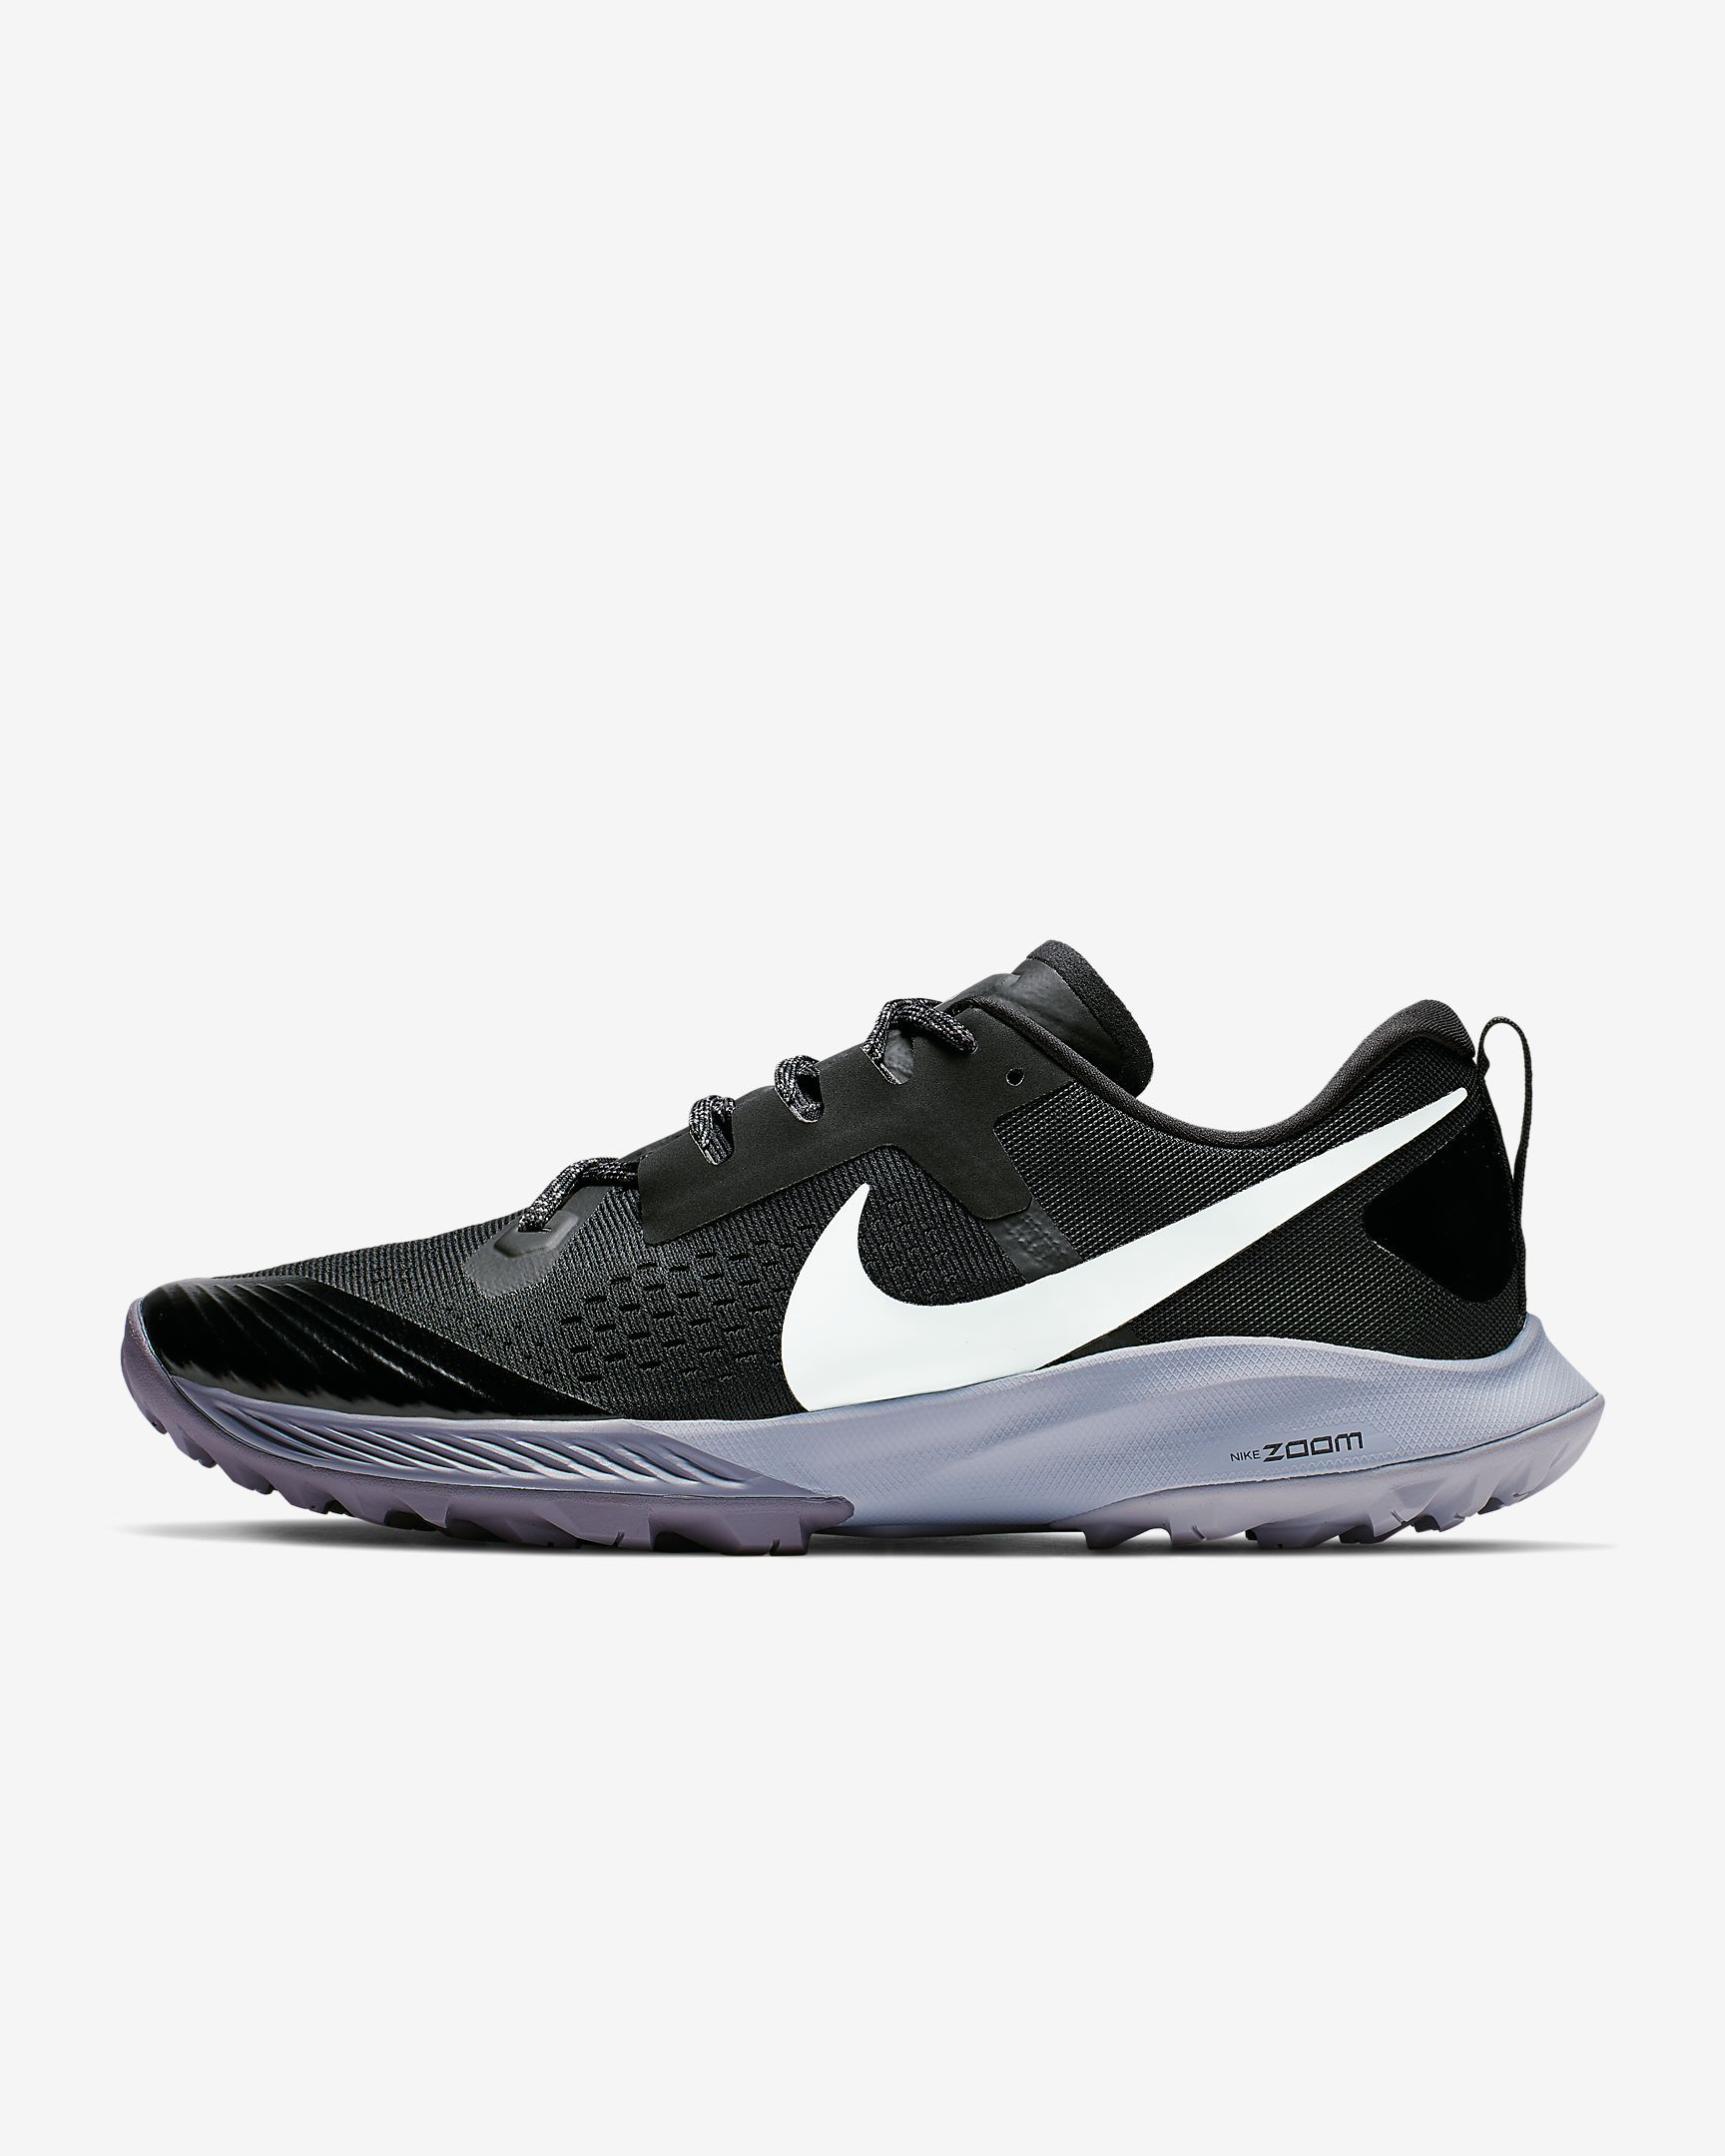 No autorizado Puede ser calculado Marina  Nike Air Zoom Terra Kiger 5 Zapatillas de running - Hombre. Nike.com ES |  Mens trail running shoes, Mens nike shoes, Running shoes for men